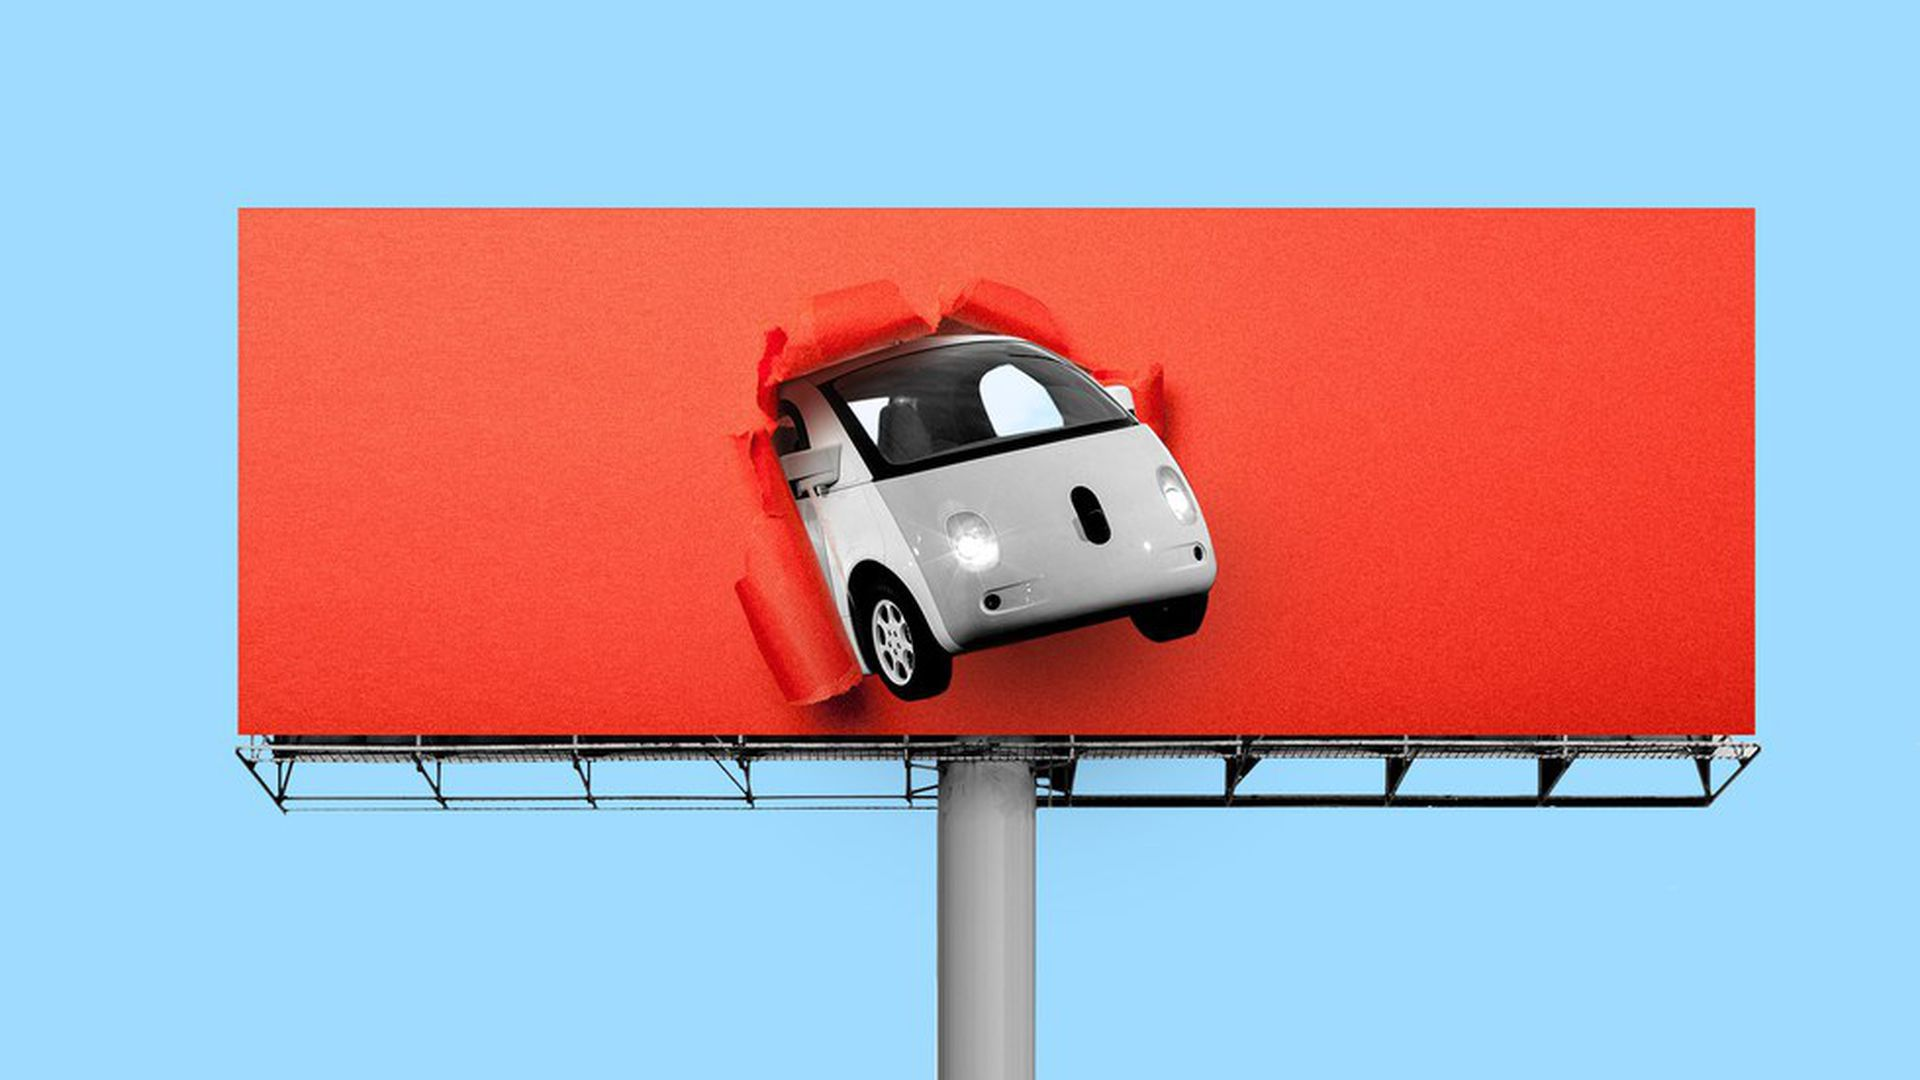 The Future Of Media In Driverless Cars Depends On Who Owns The Data